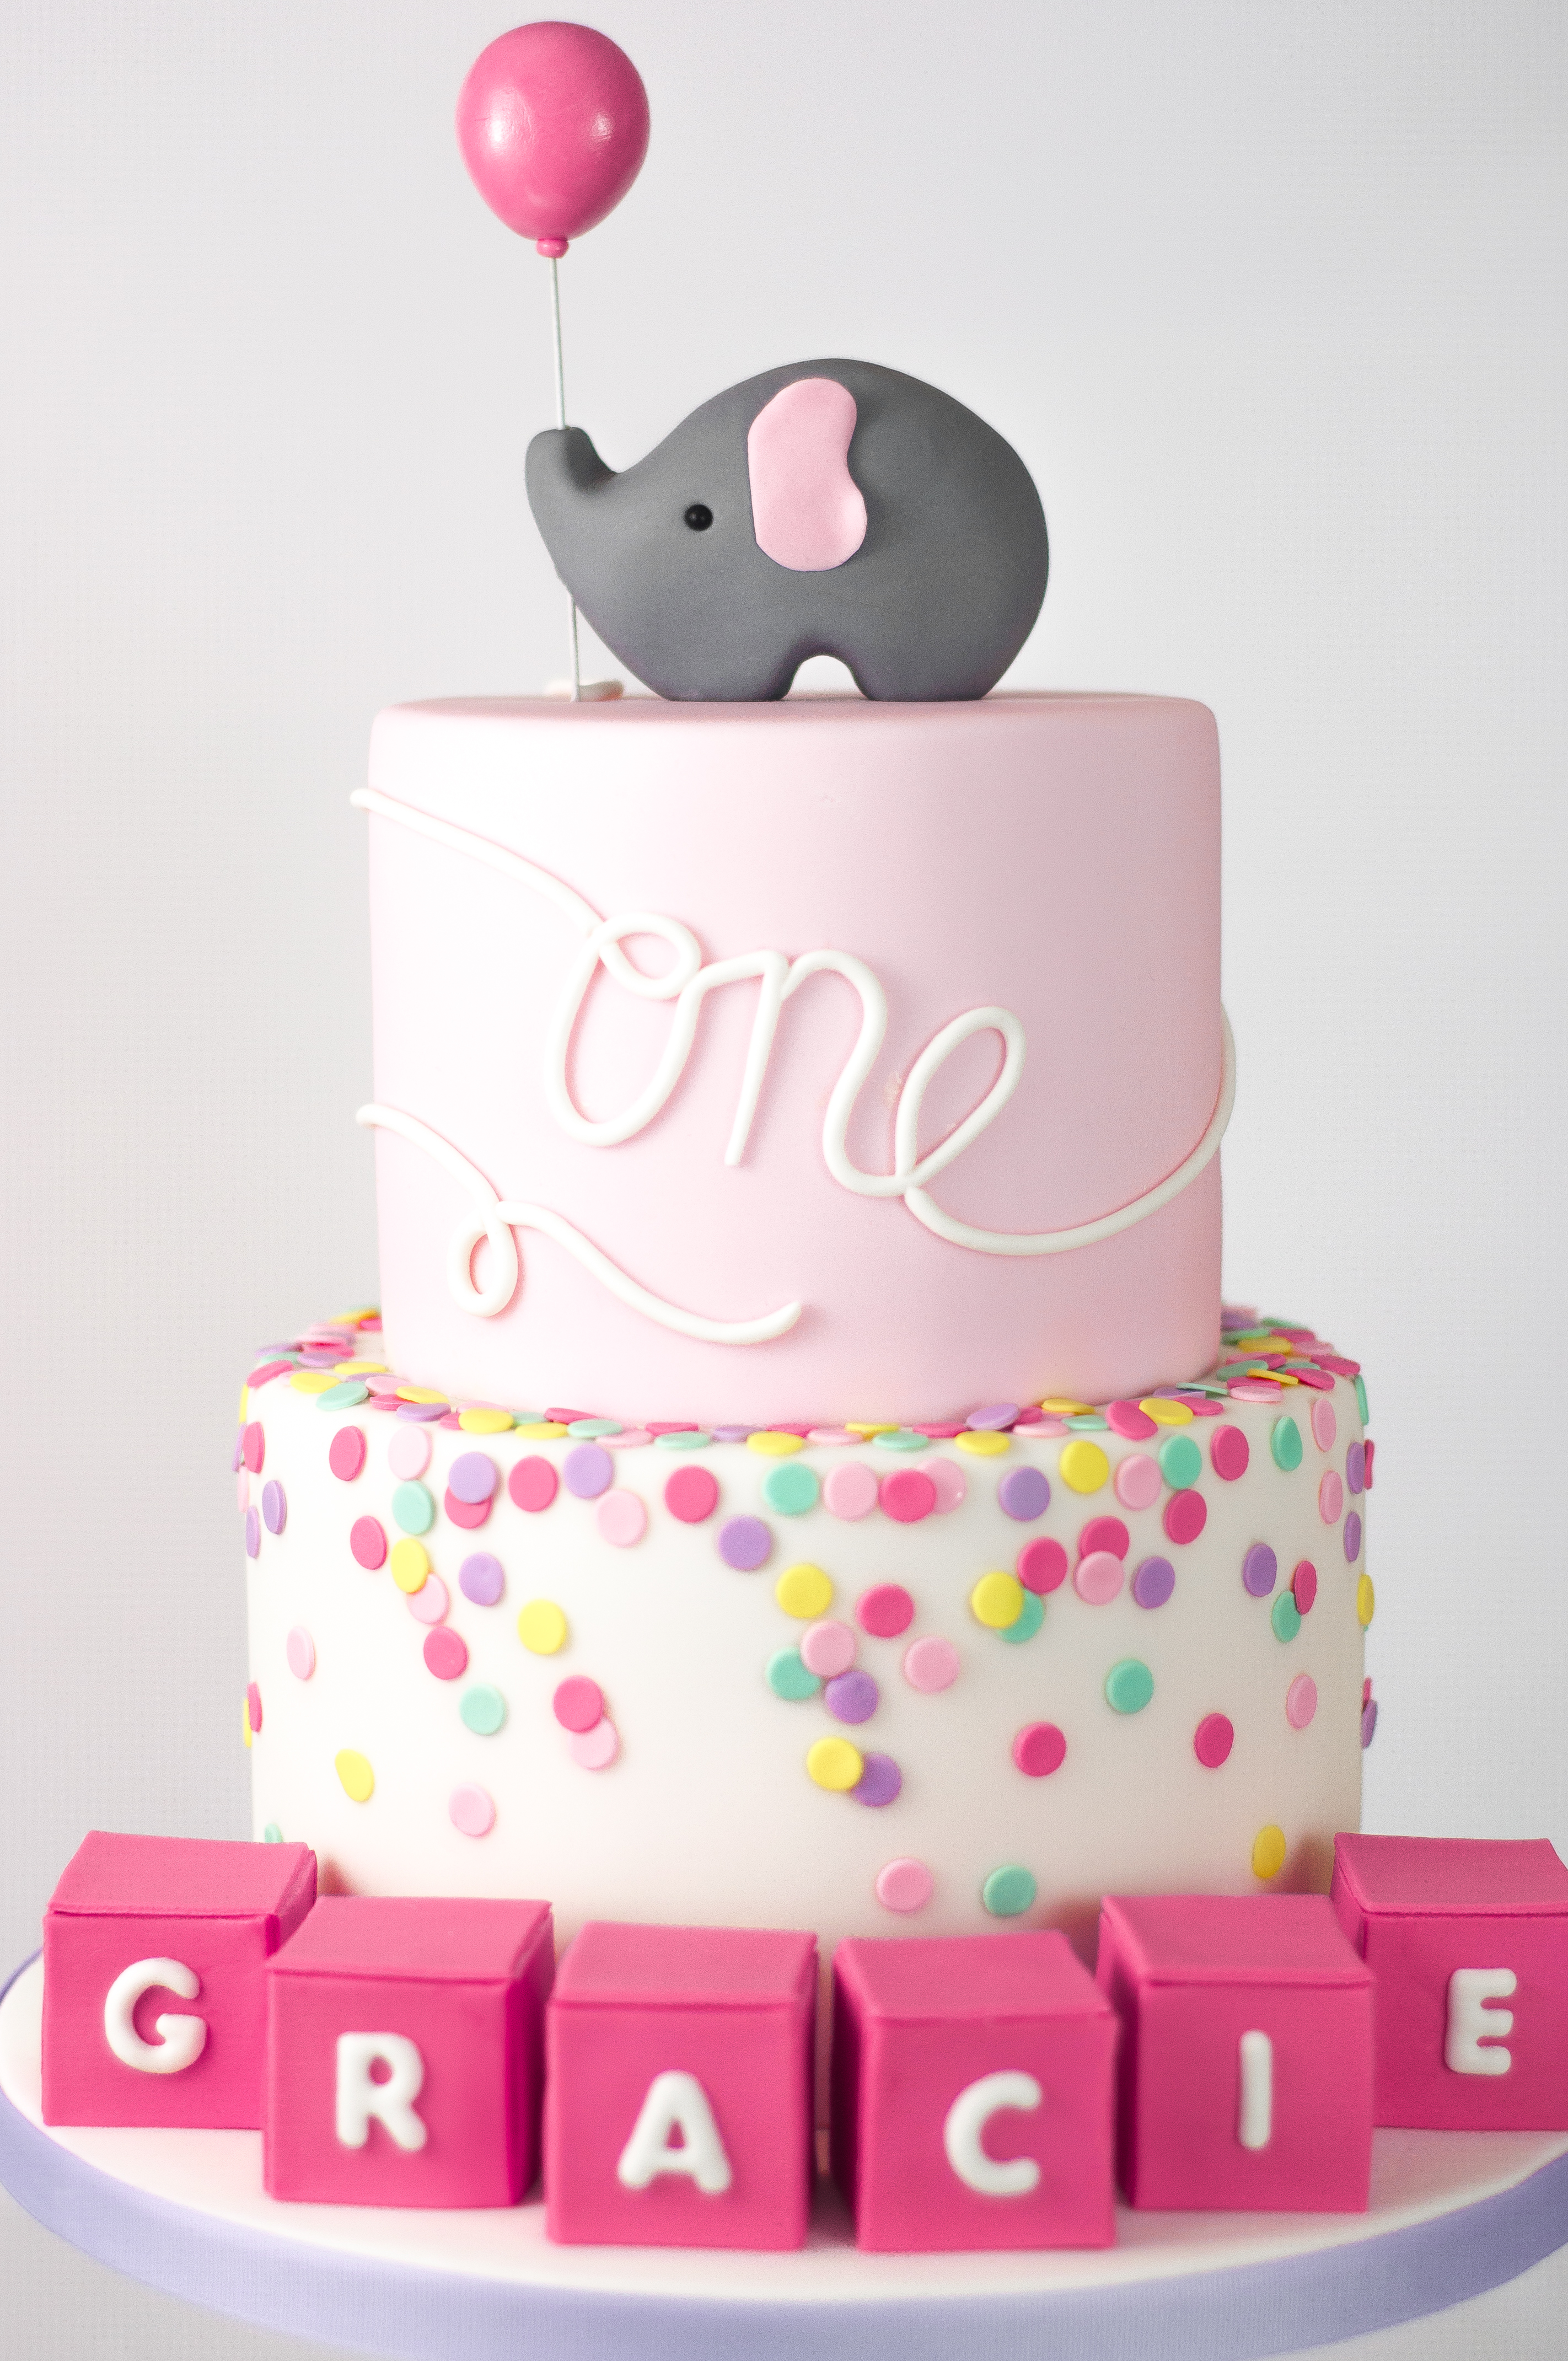 Pink and white baby elephant cake